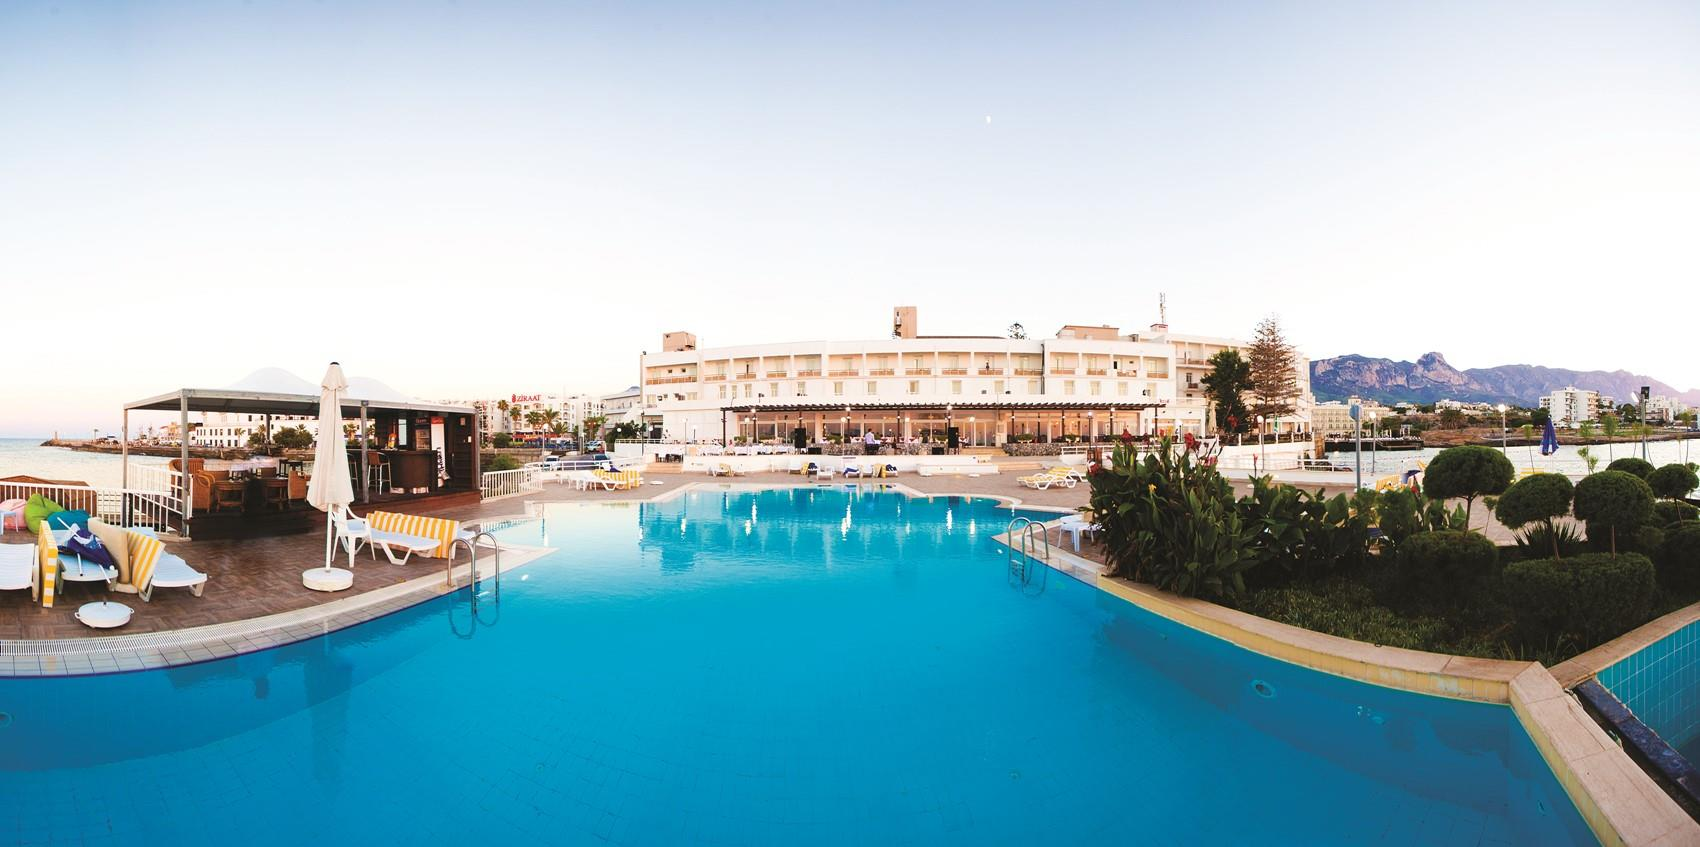 dome-hotel-and-casino-girne-genel-008